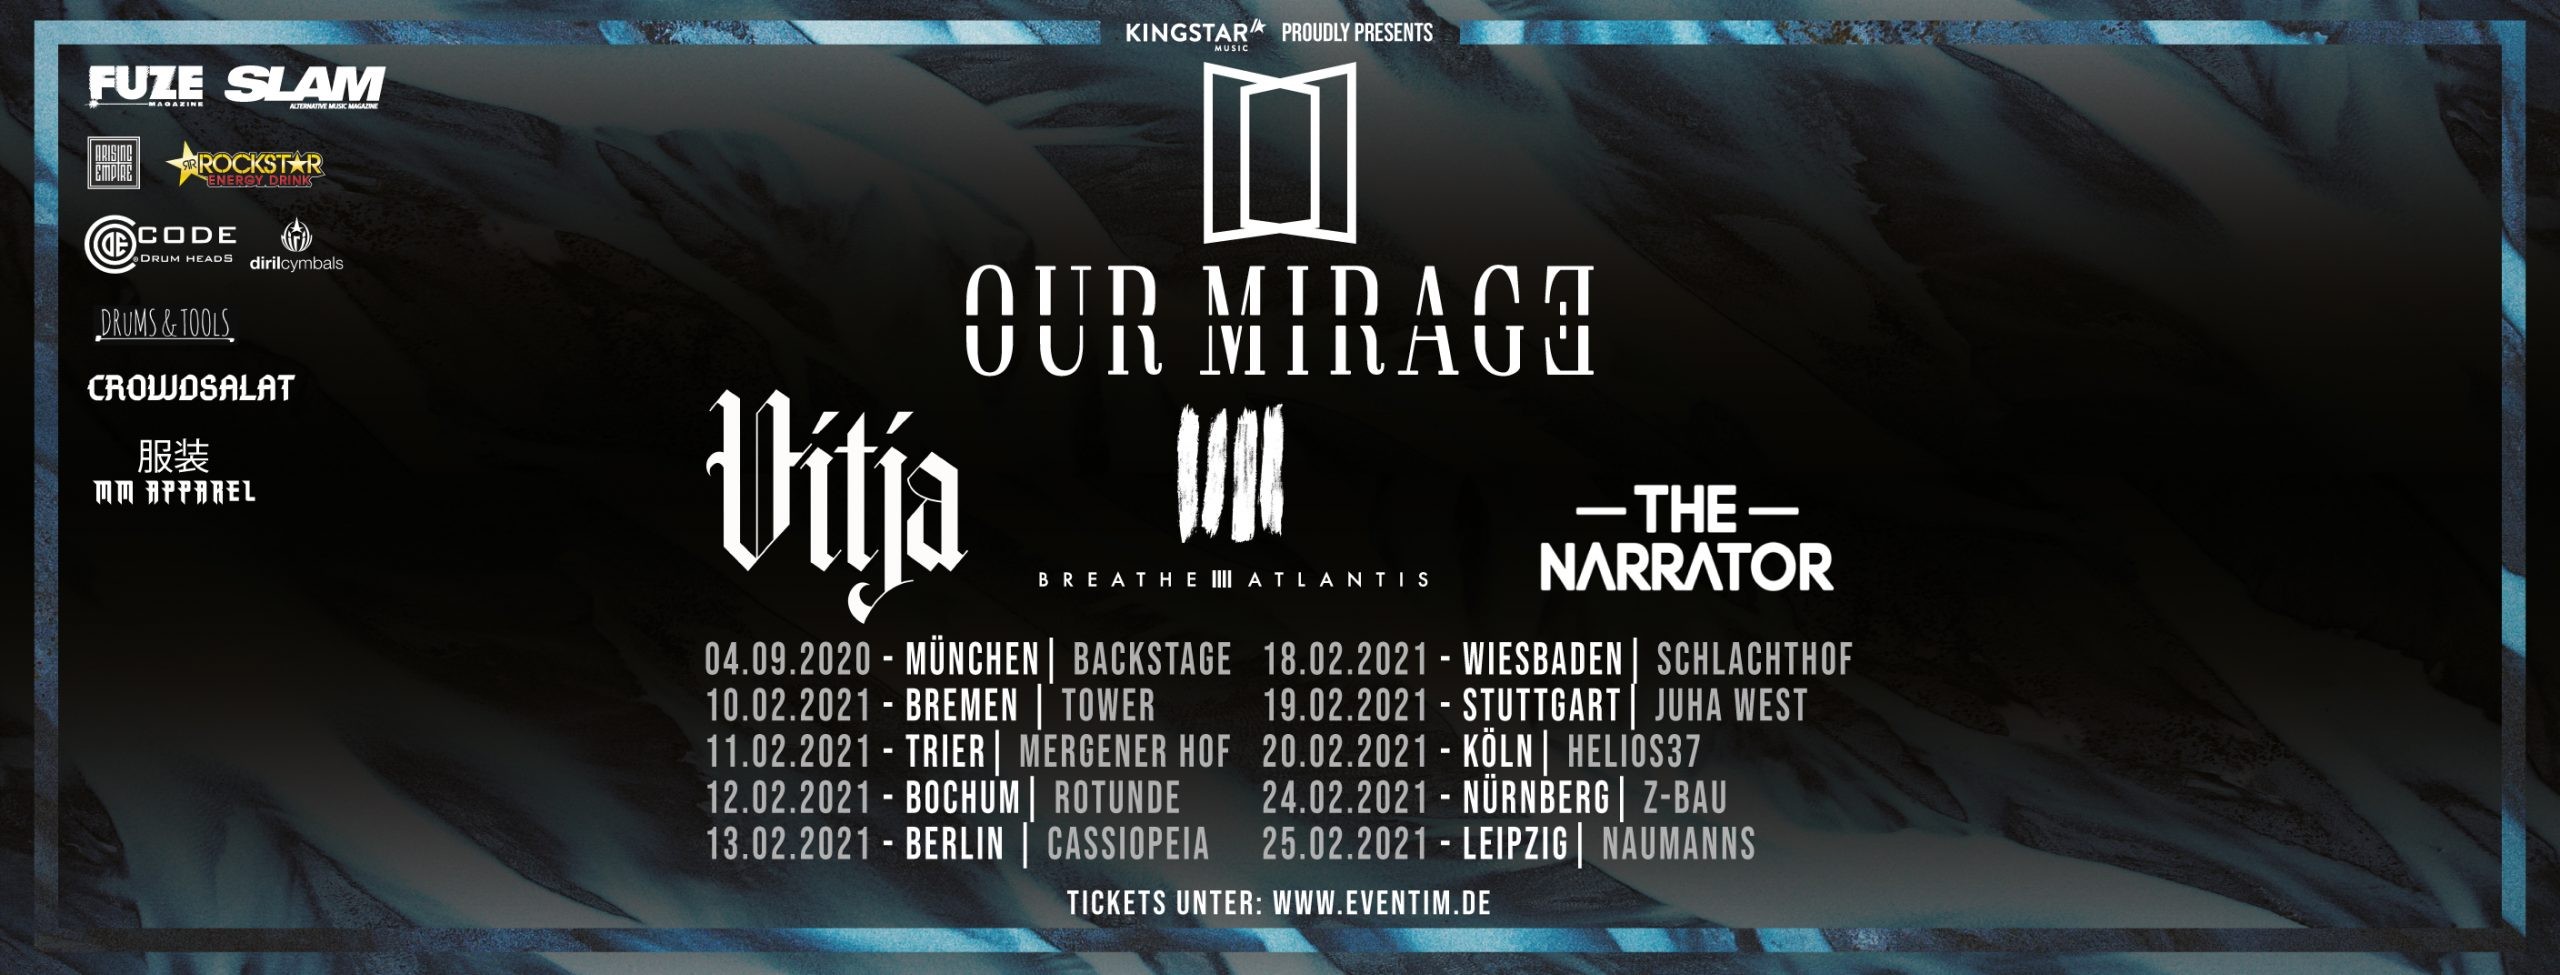 [VERSCHOBEN] Our Mirage, Vitja, Breathe Atlantis